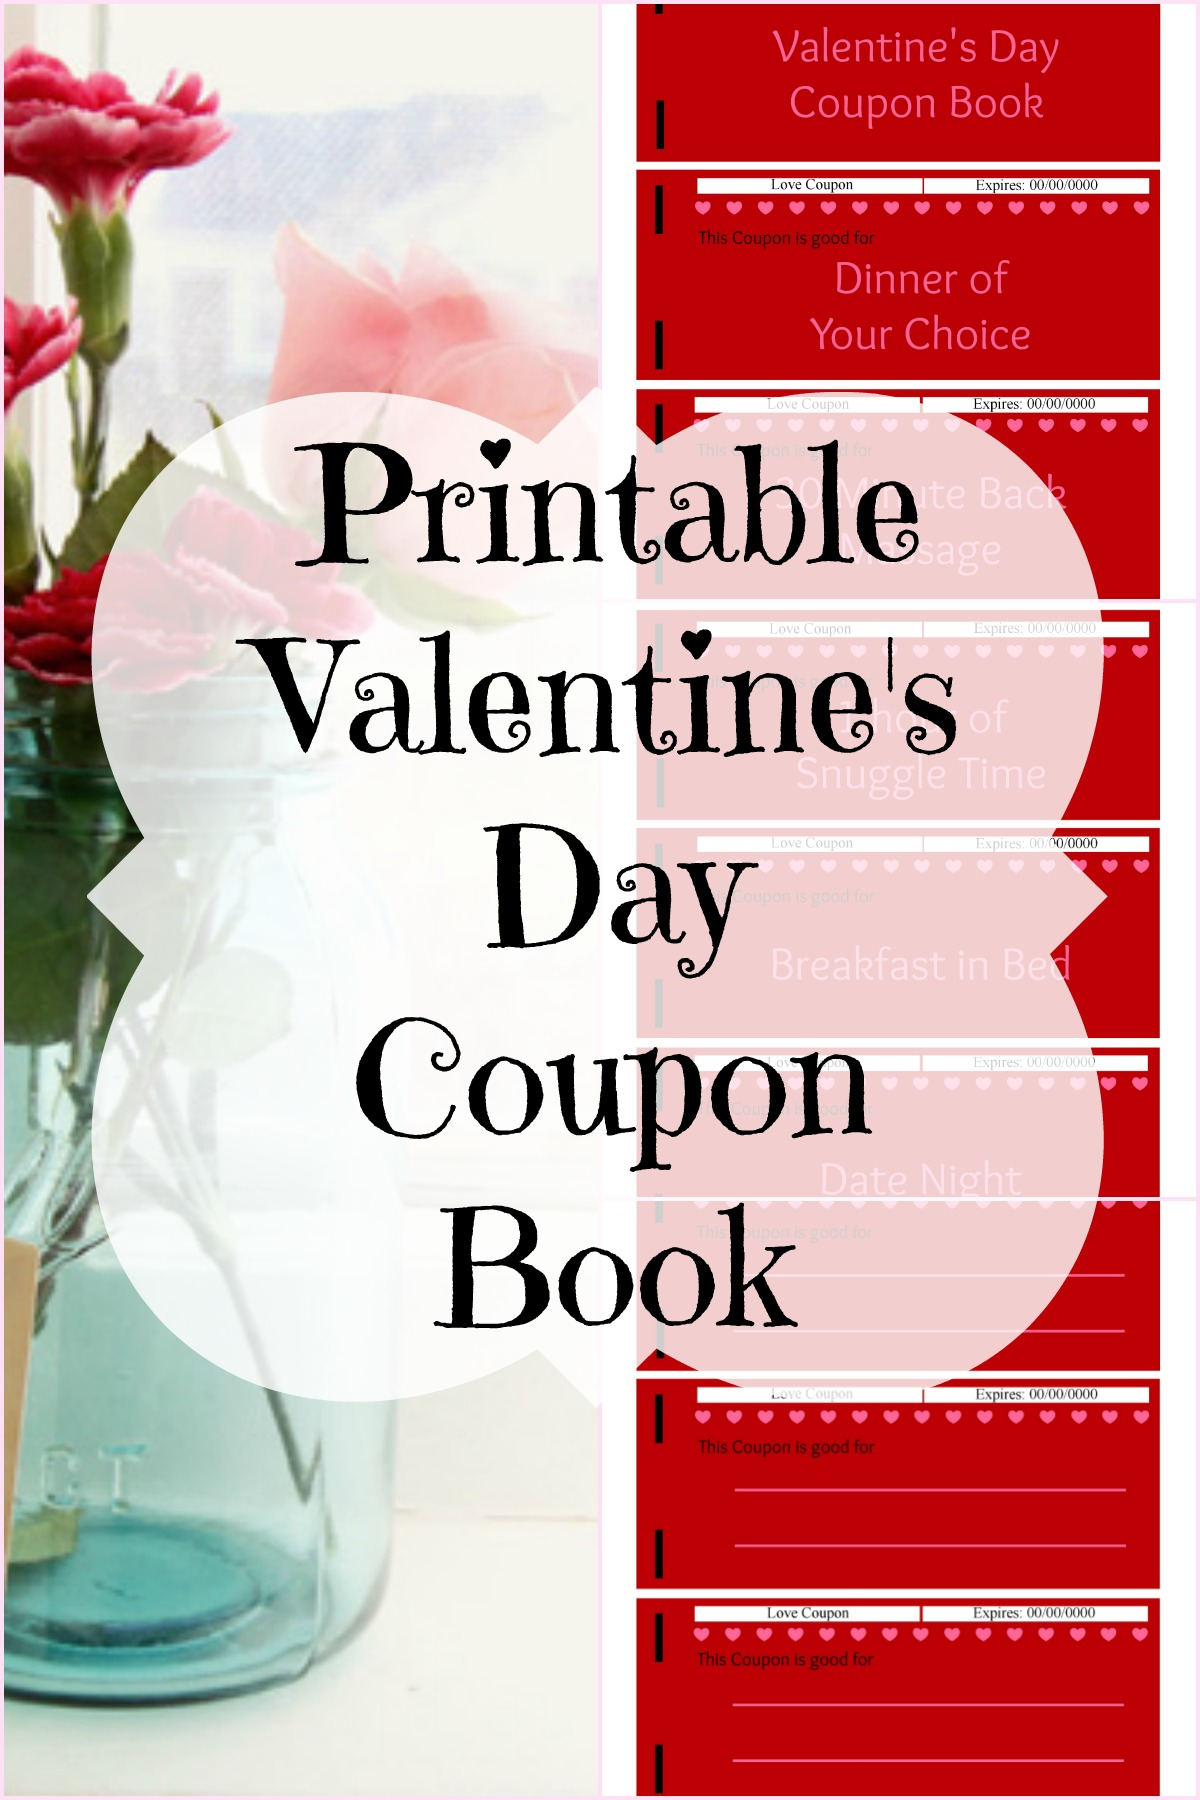 Printable Valentine's Day Coupon Book